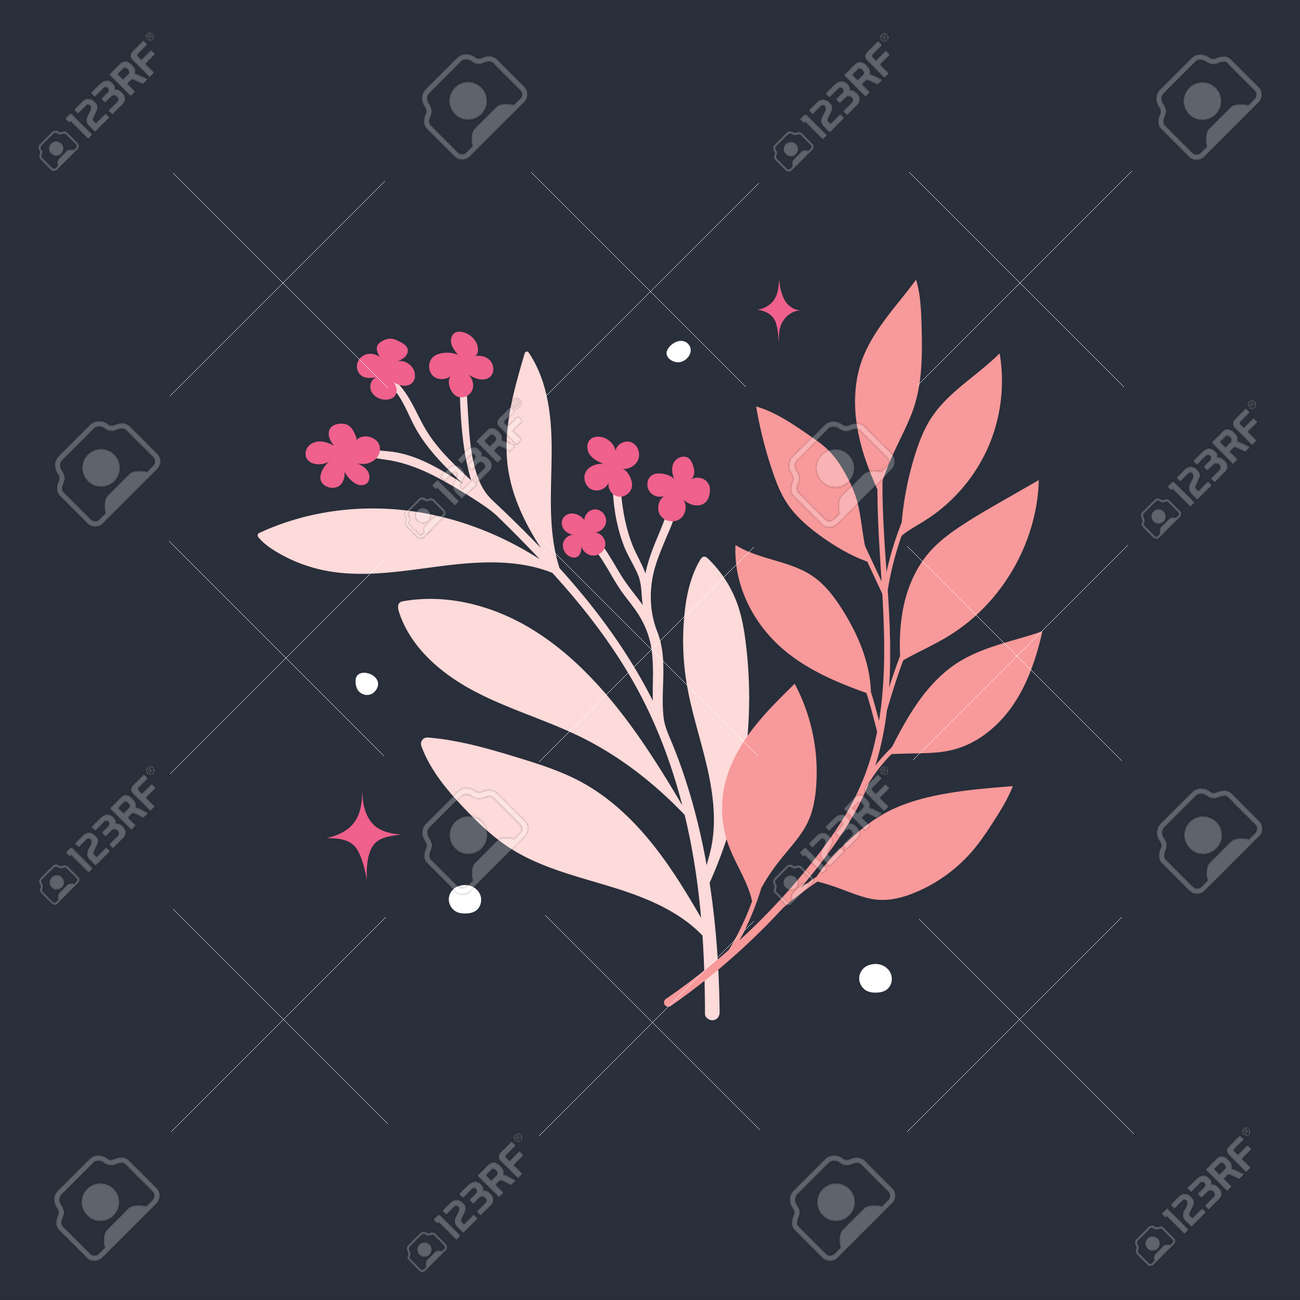 Vector modern floral arrangement background. Cute delicate botanical illustration with leaves and plants. - 168265264